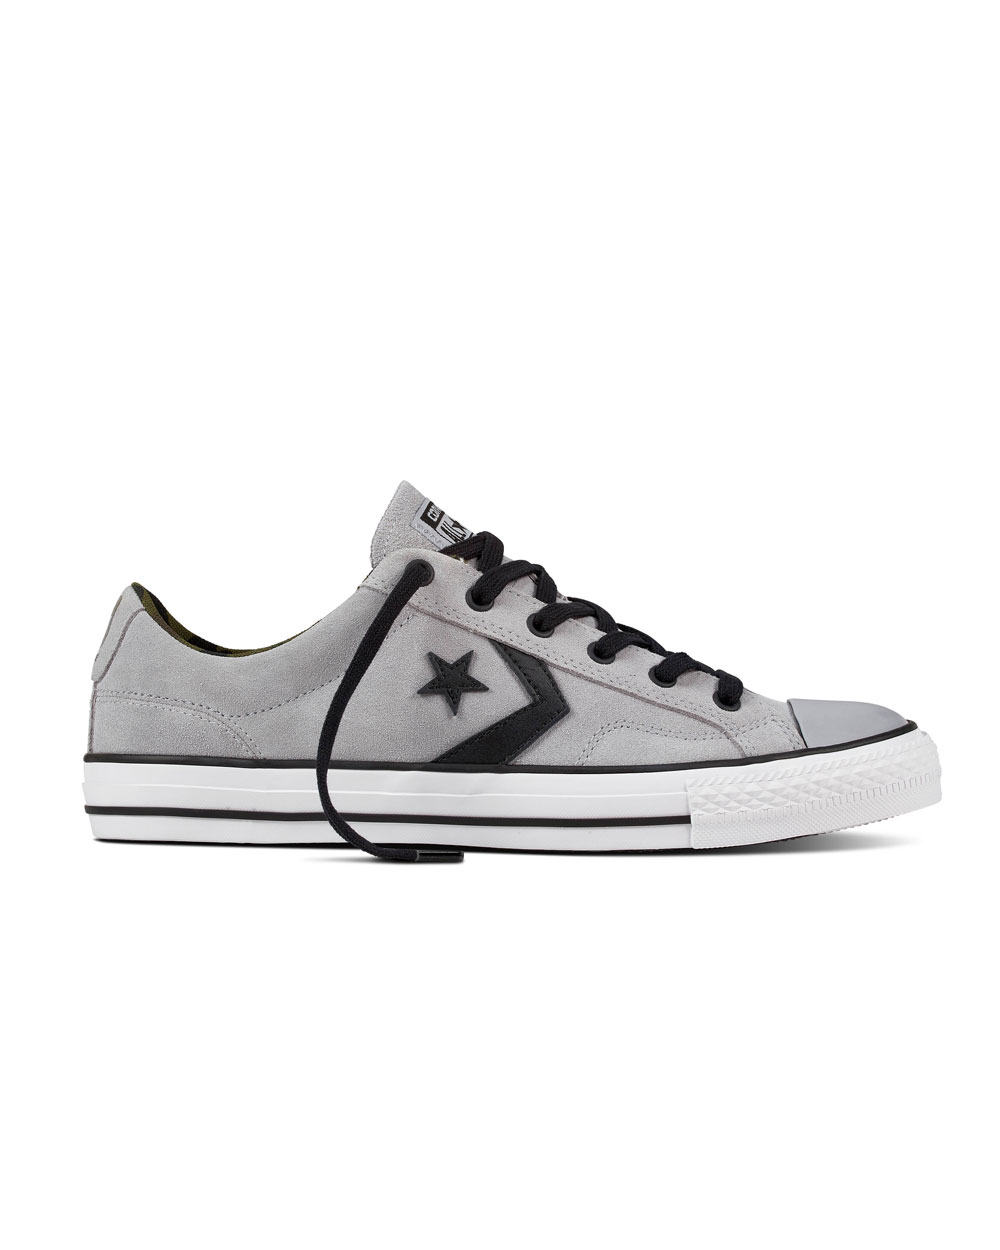 Converse Star Player Ox Leather (wolf grey/white) | 2tall.com